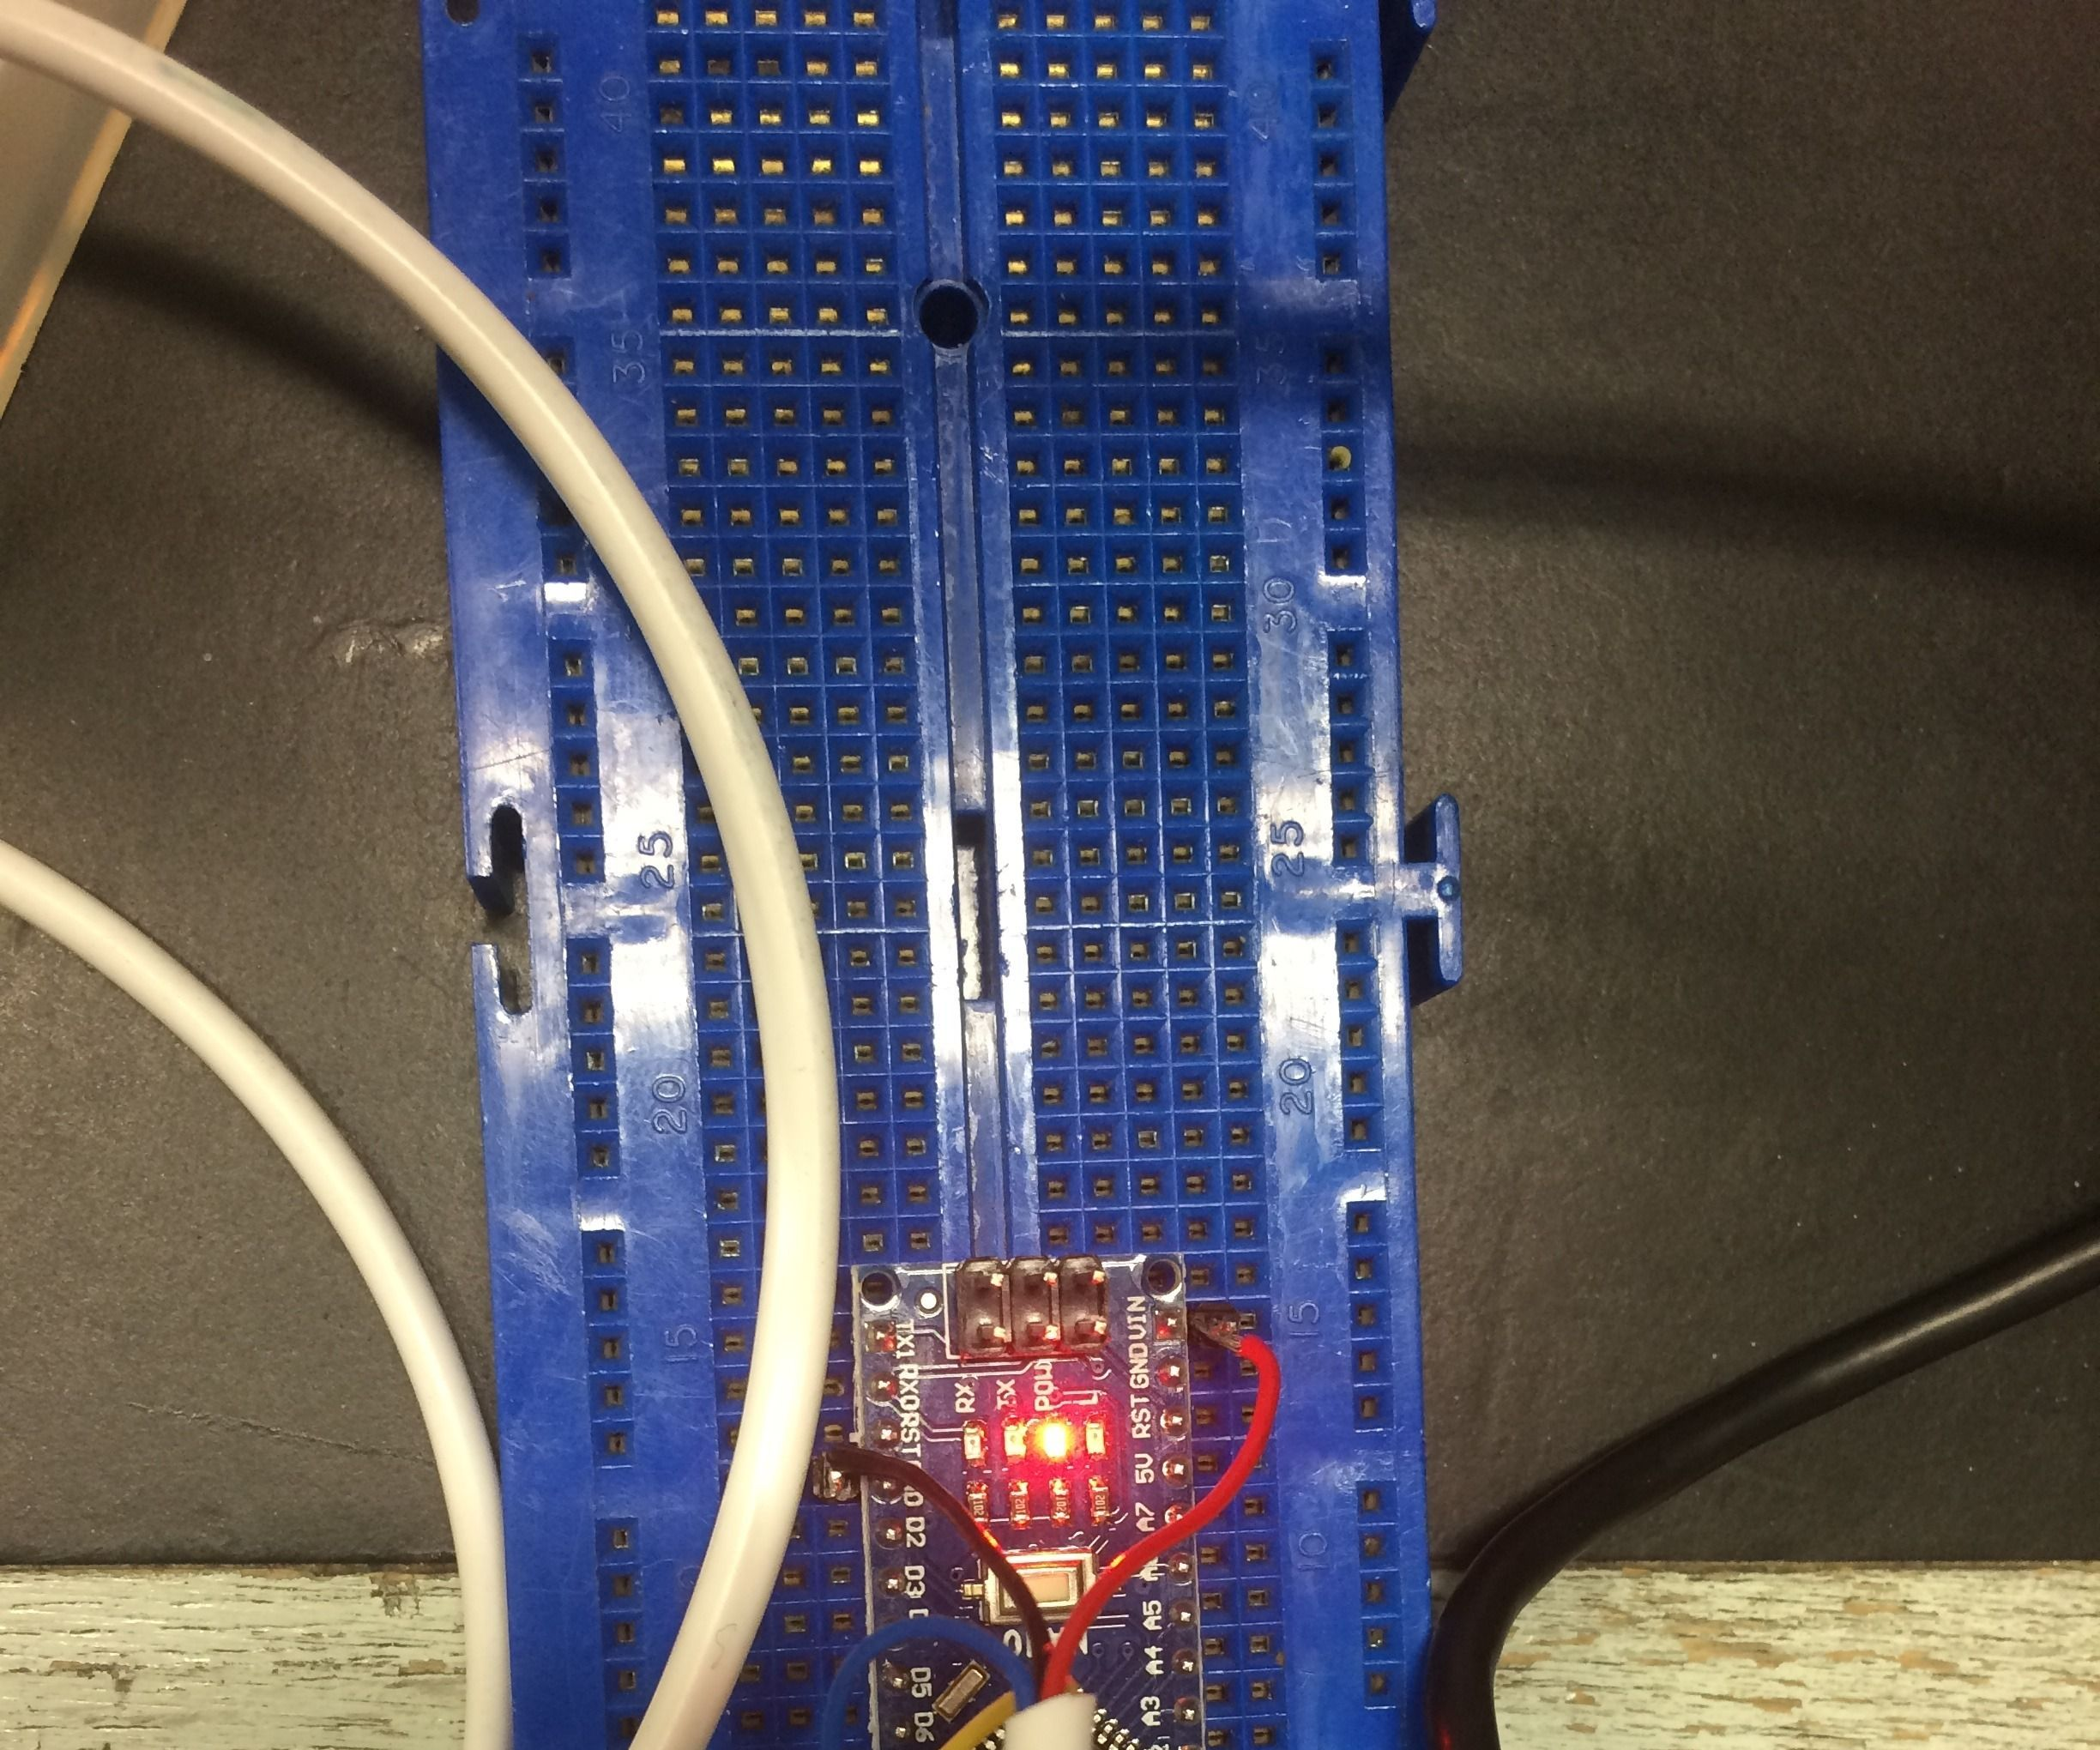 Measuring Volume of Water in a Tank Using Arduino and Ultrasonic Sensor